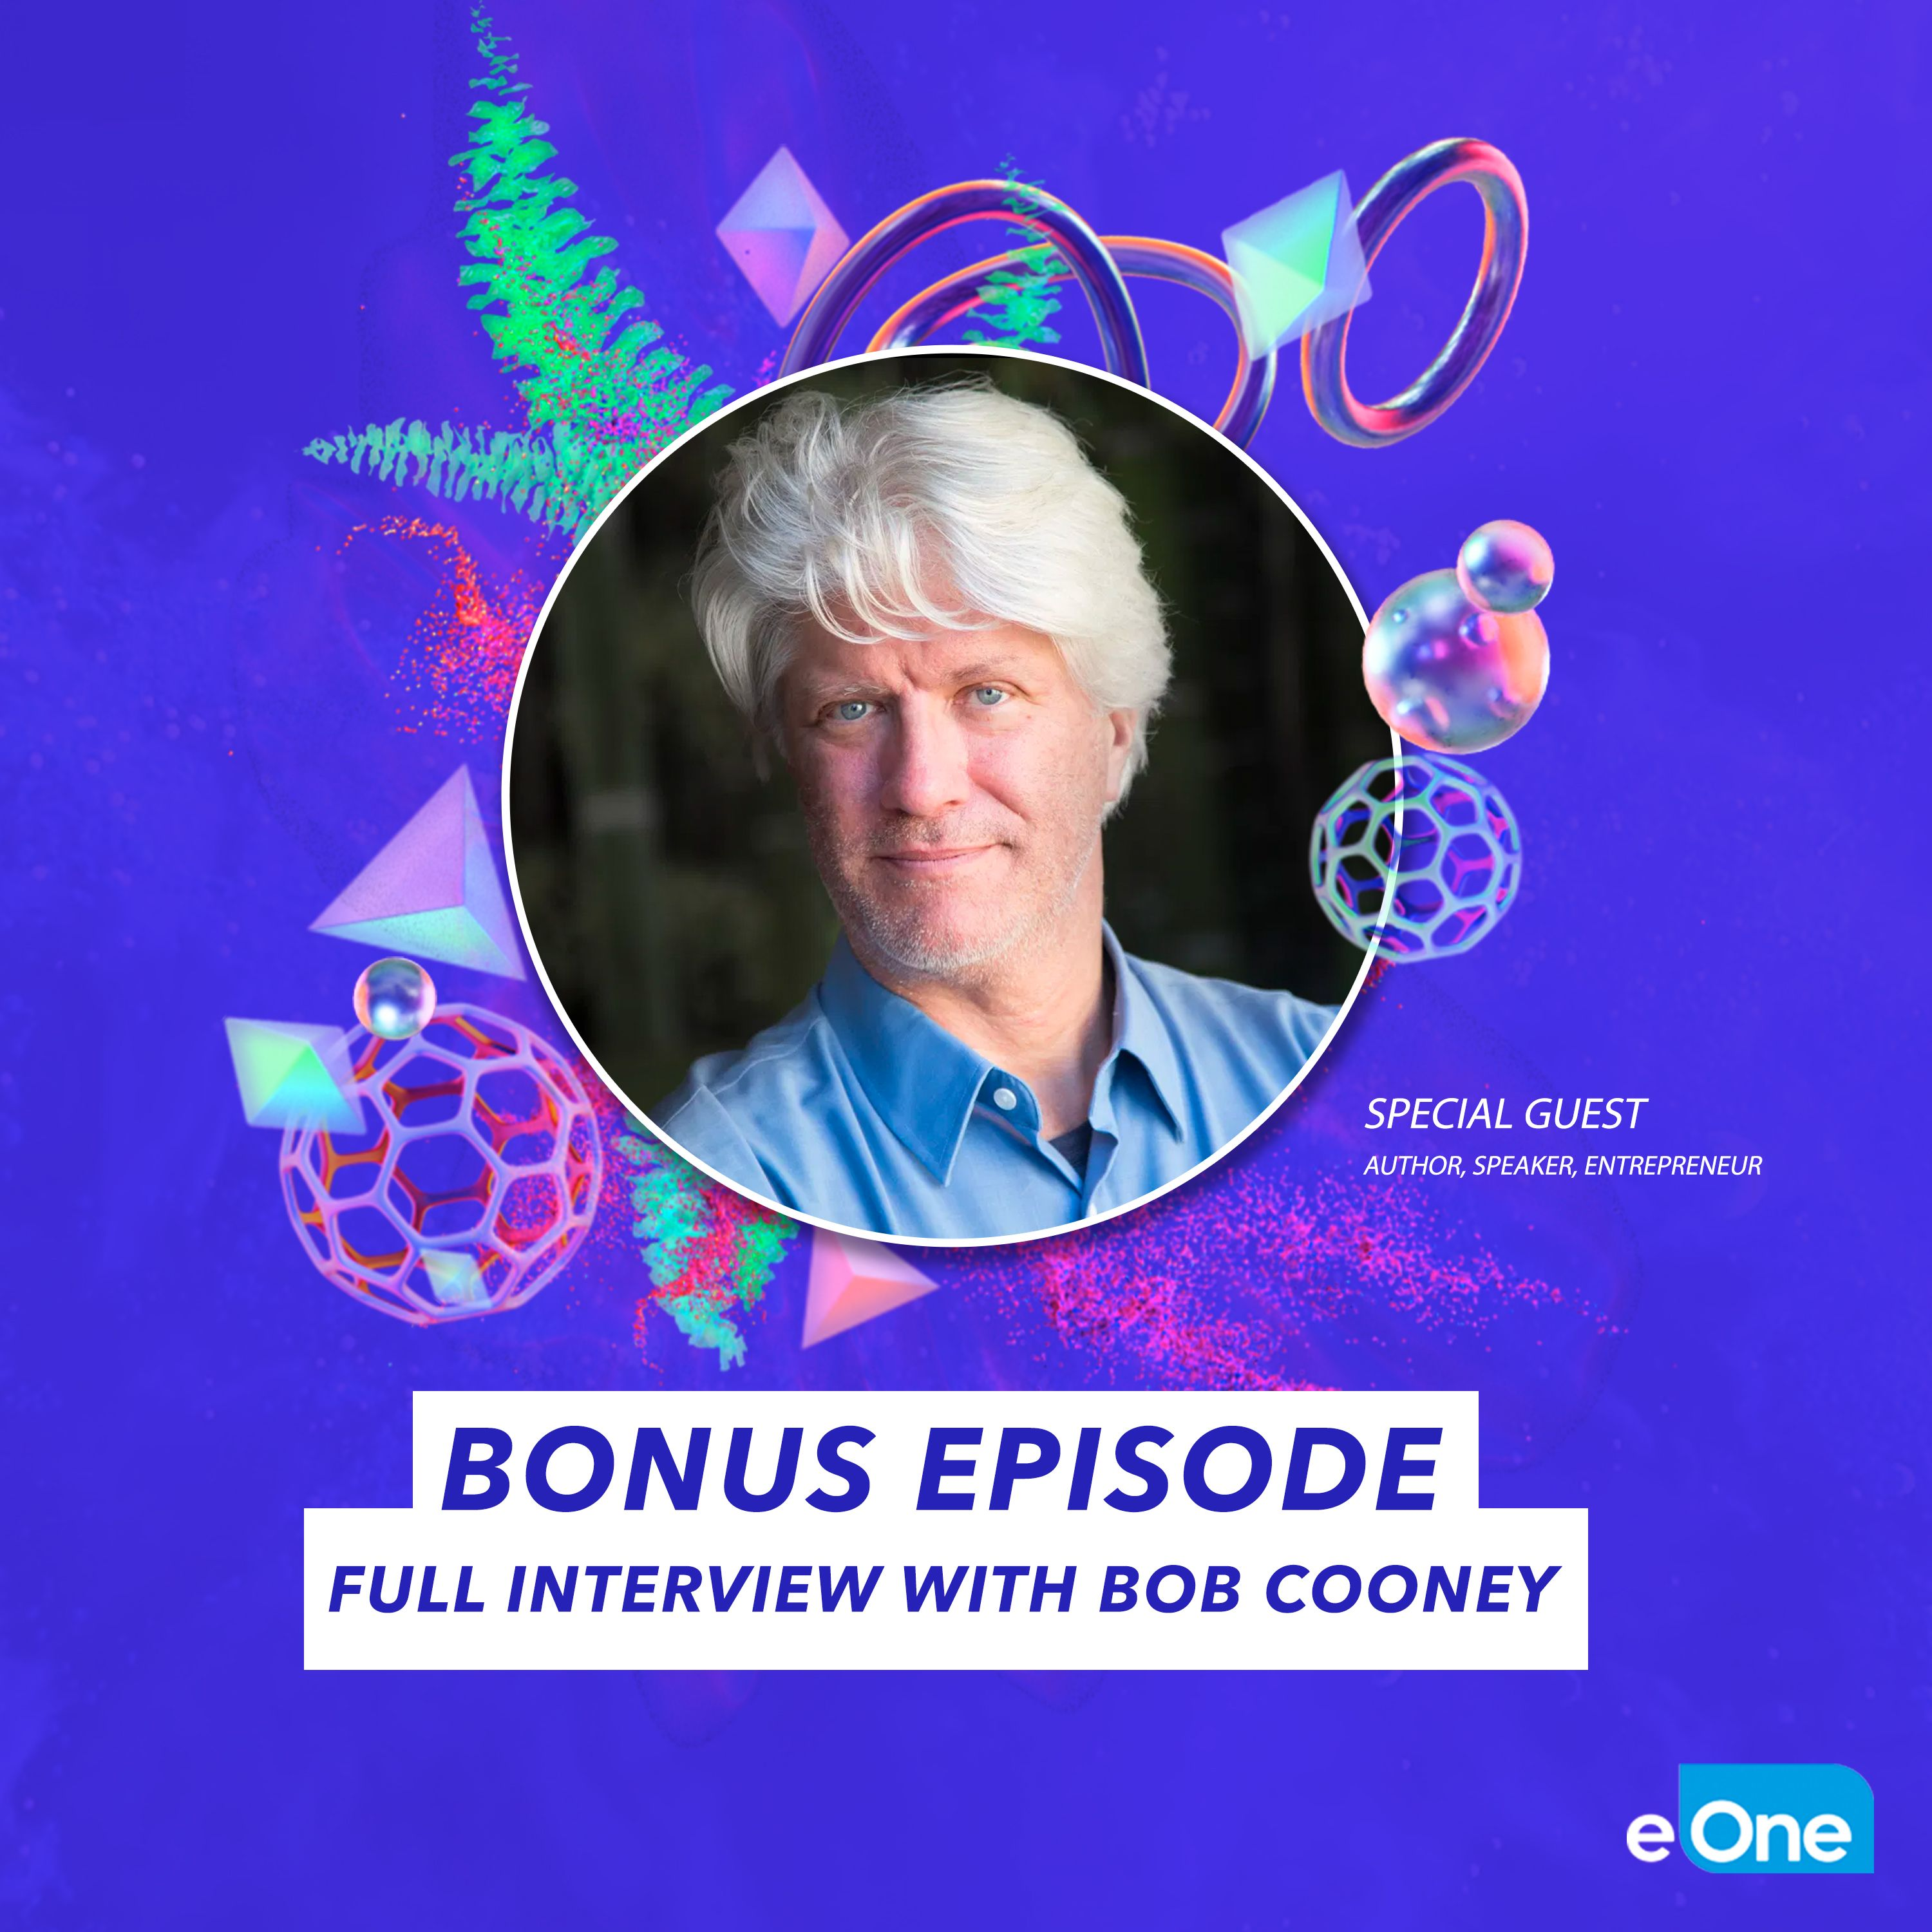 Full Interview with Immersive Entertainment Visionary Bob Cooney